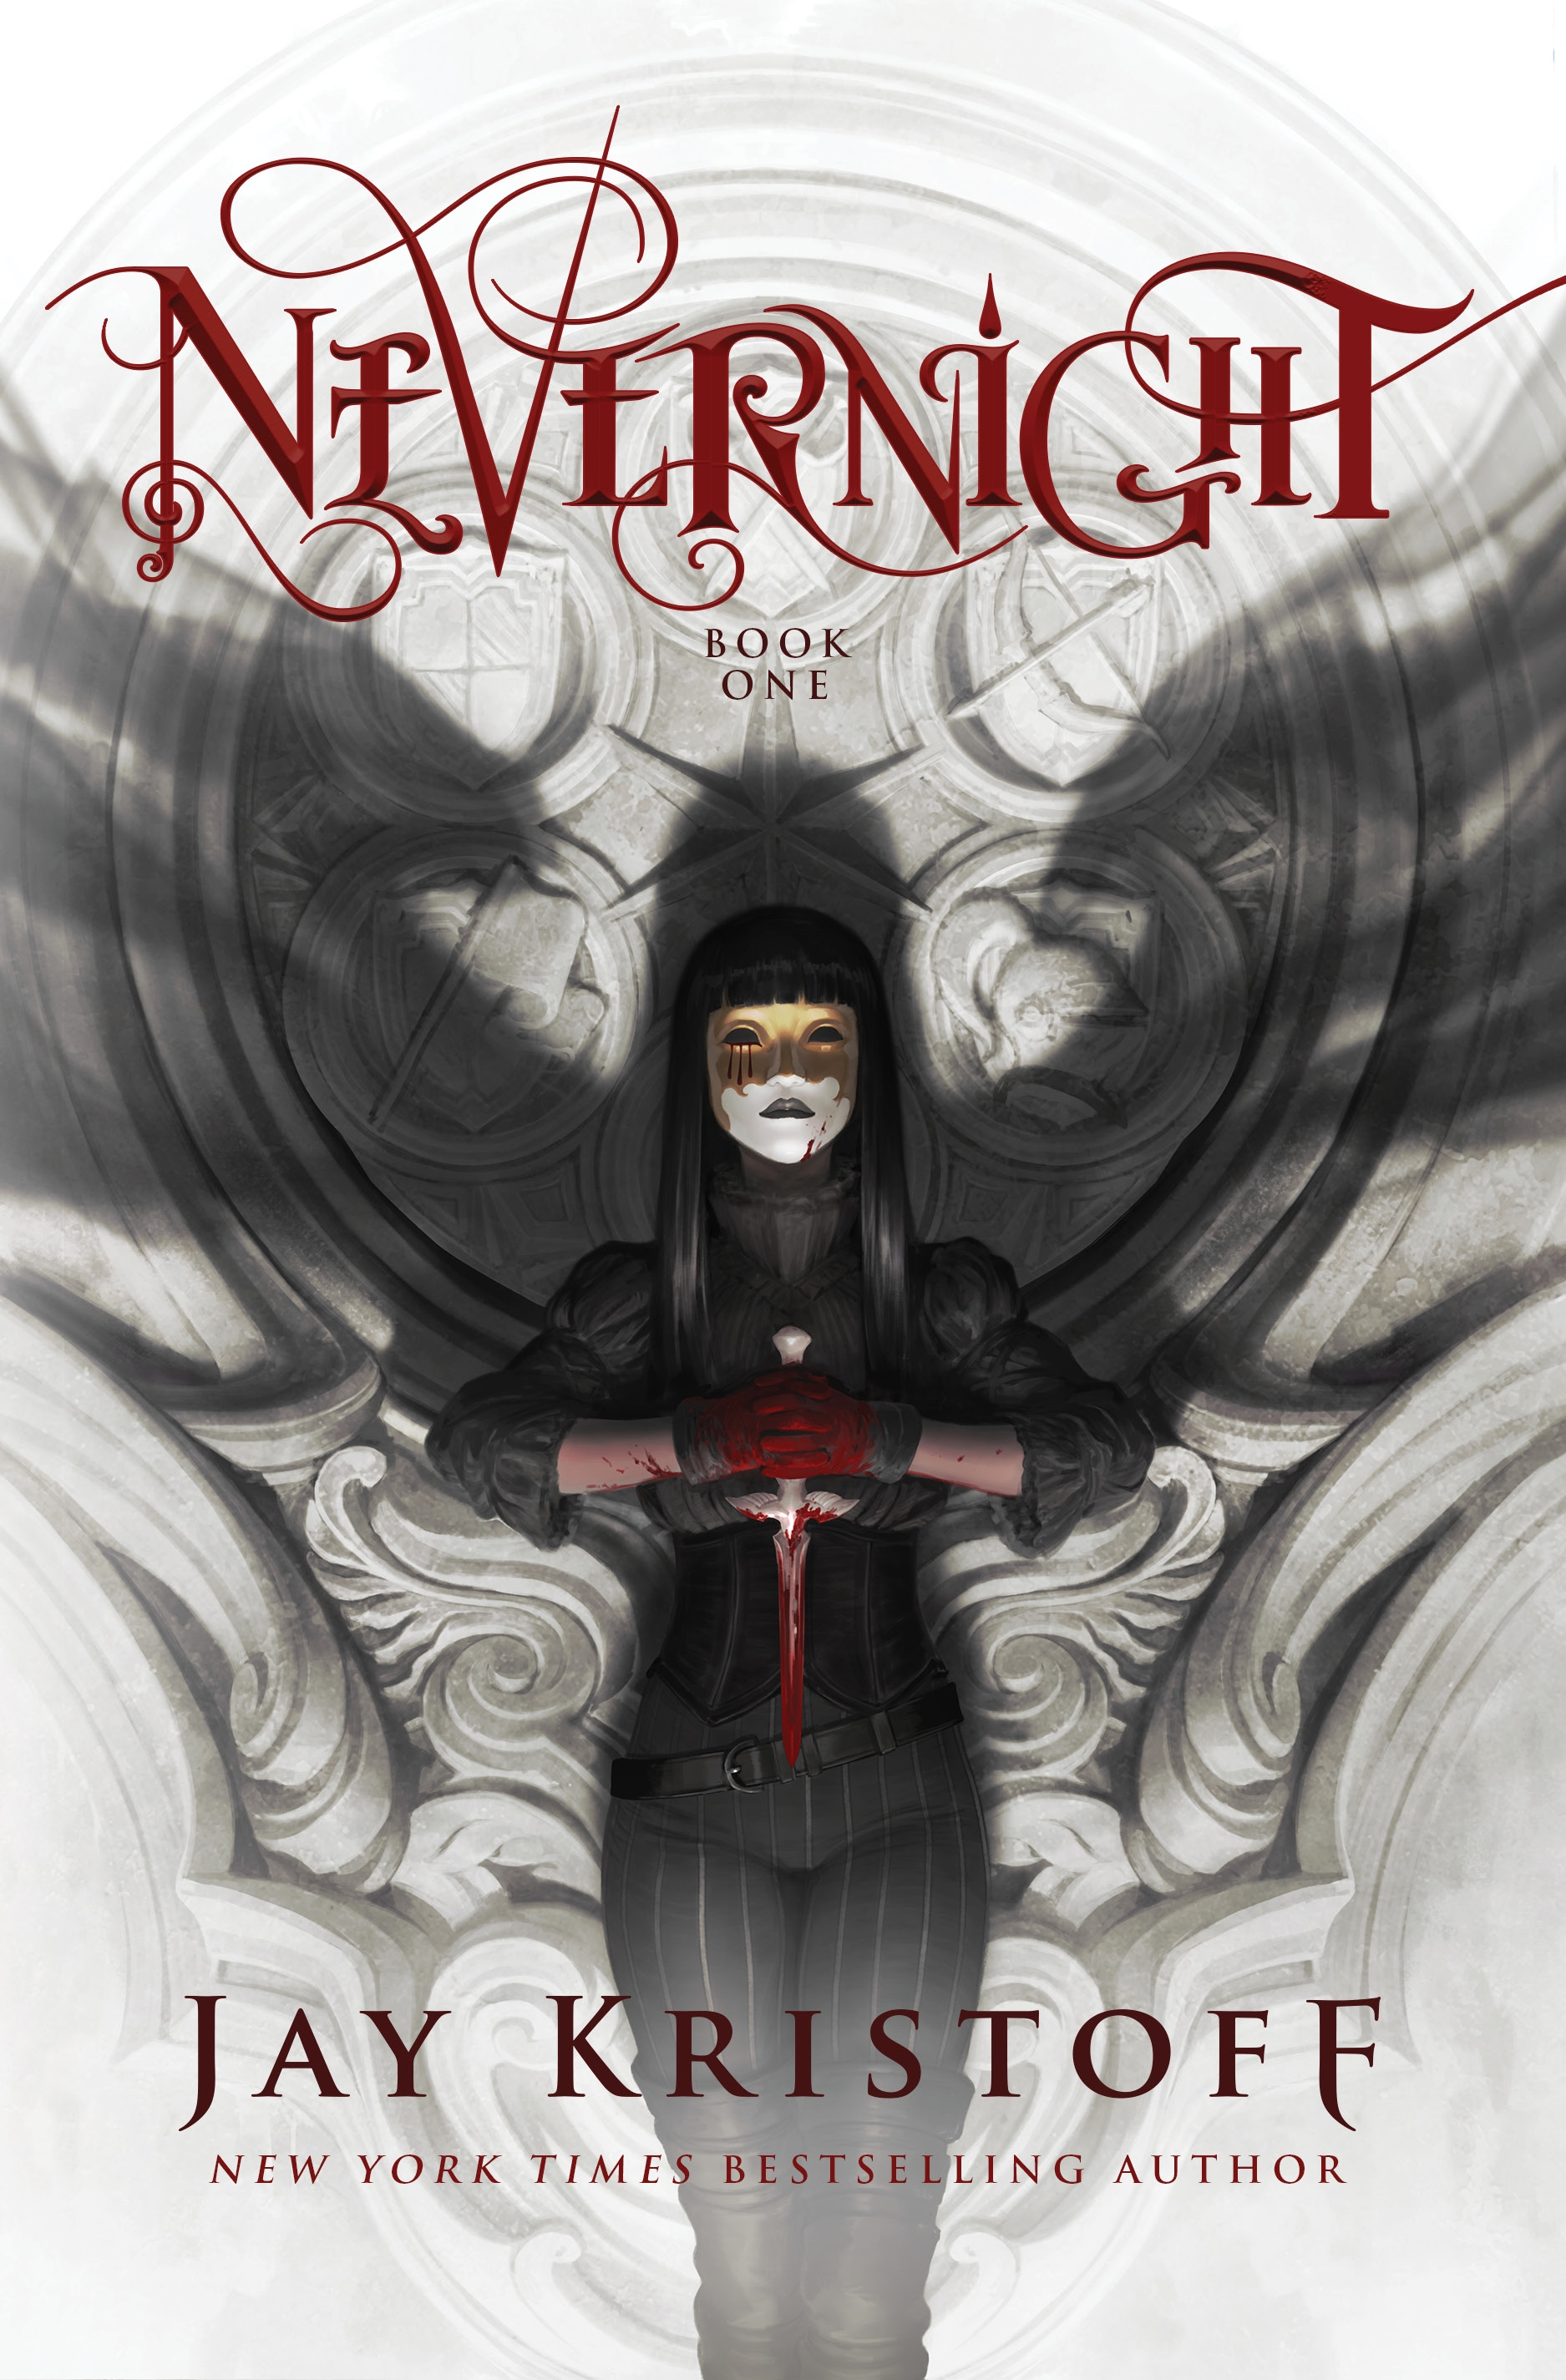 Blog Tour Review + GIVEAWAY: Nevernight by Jay Kristoff